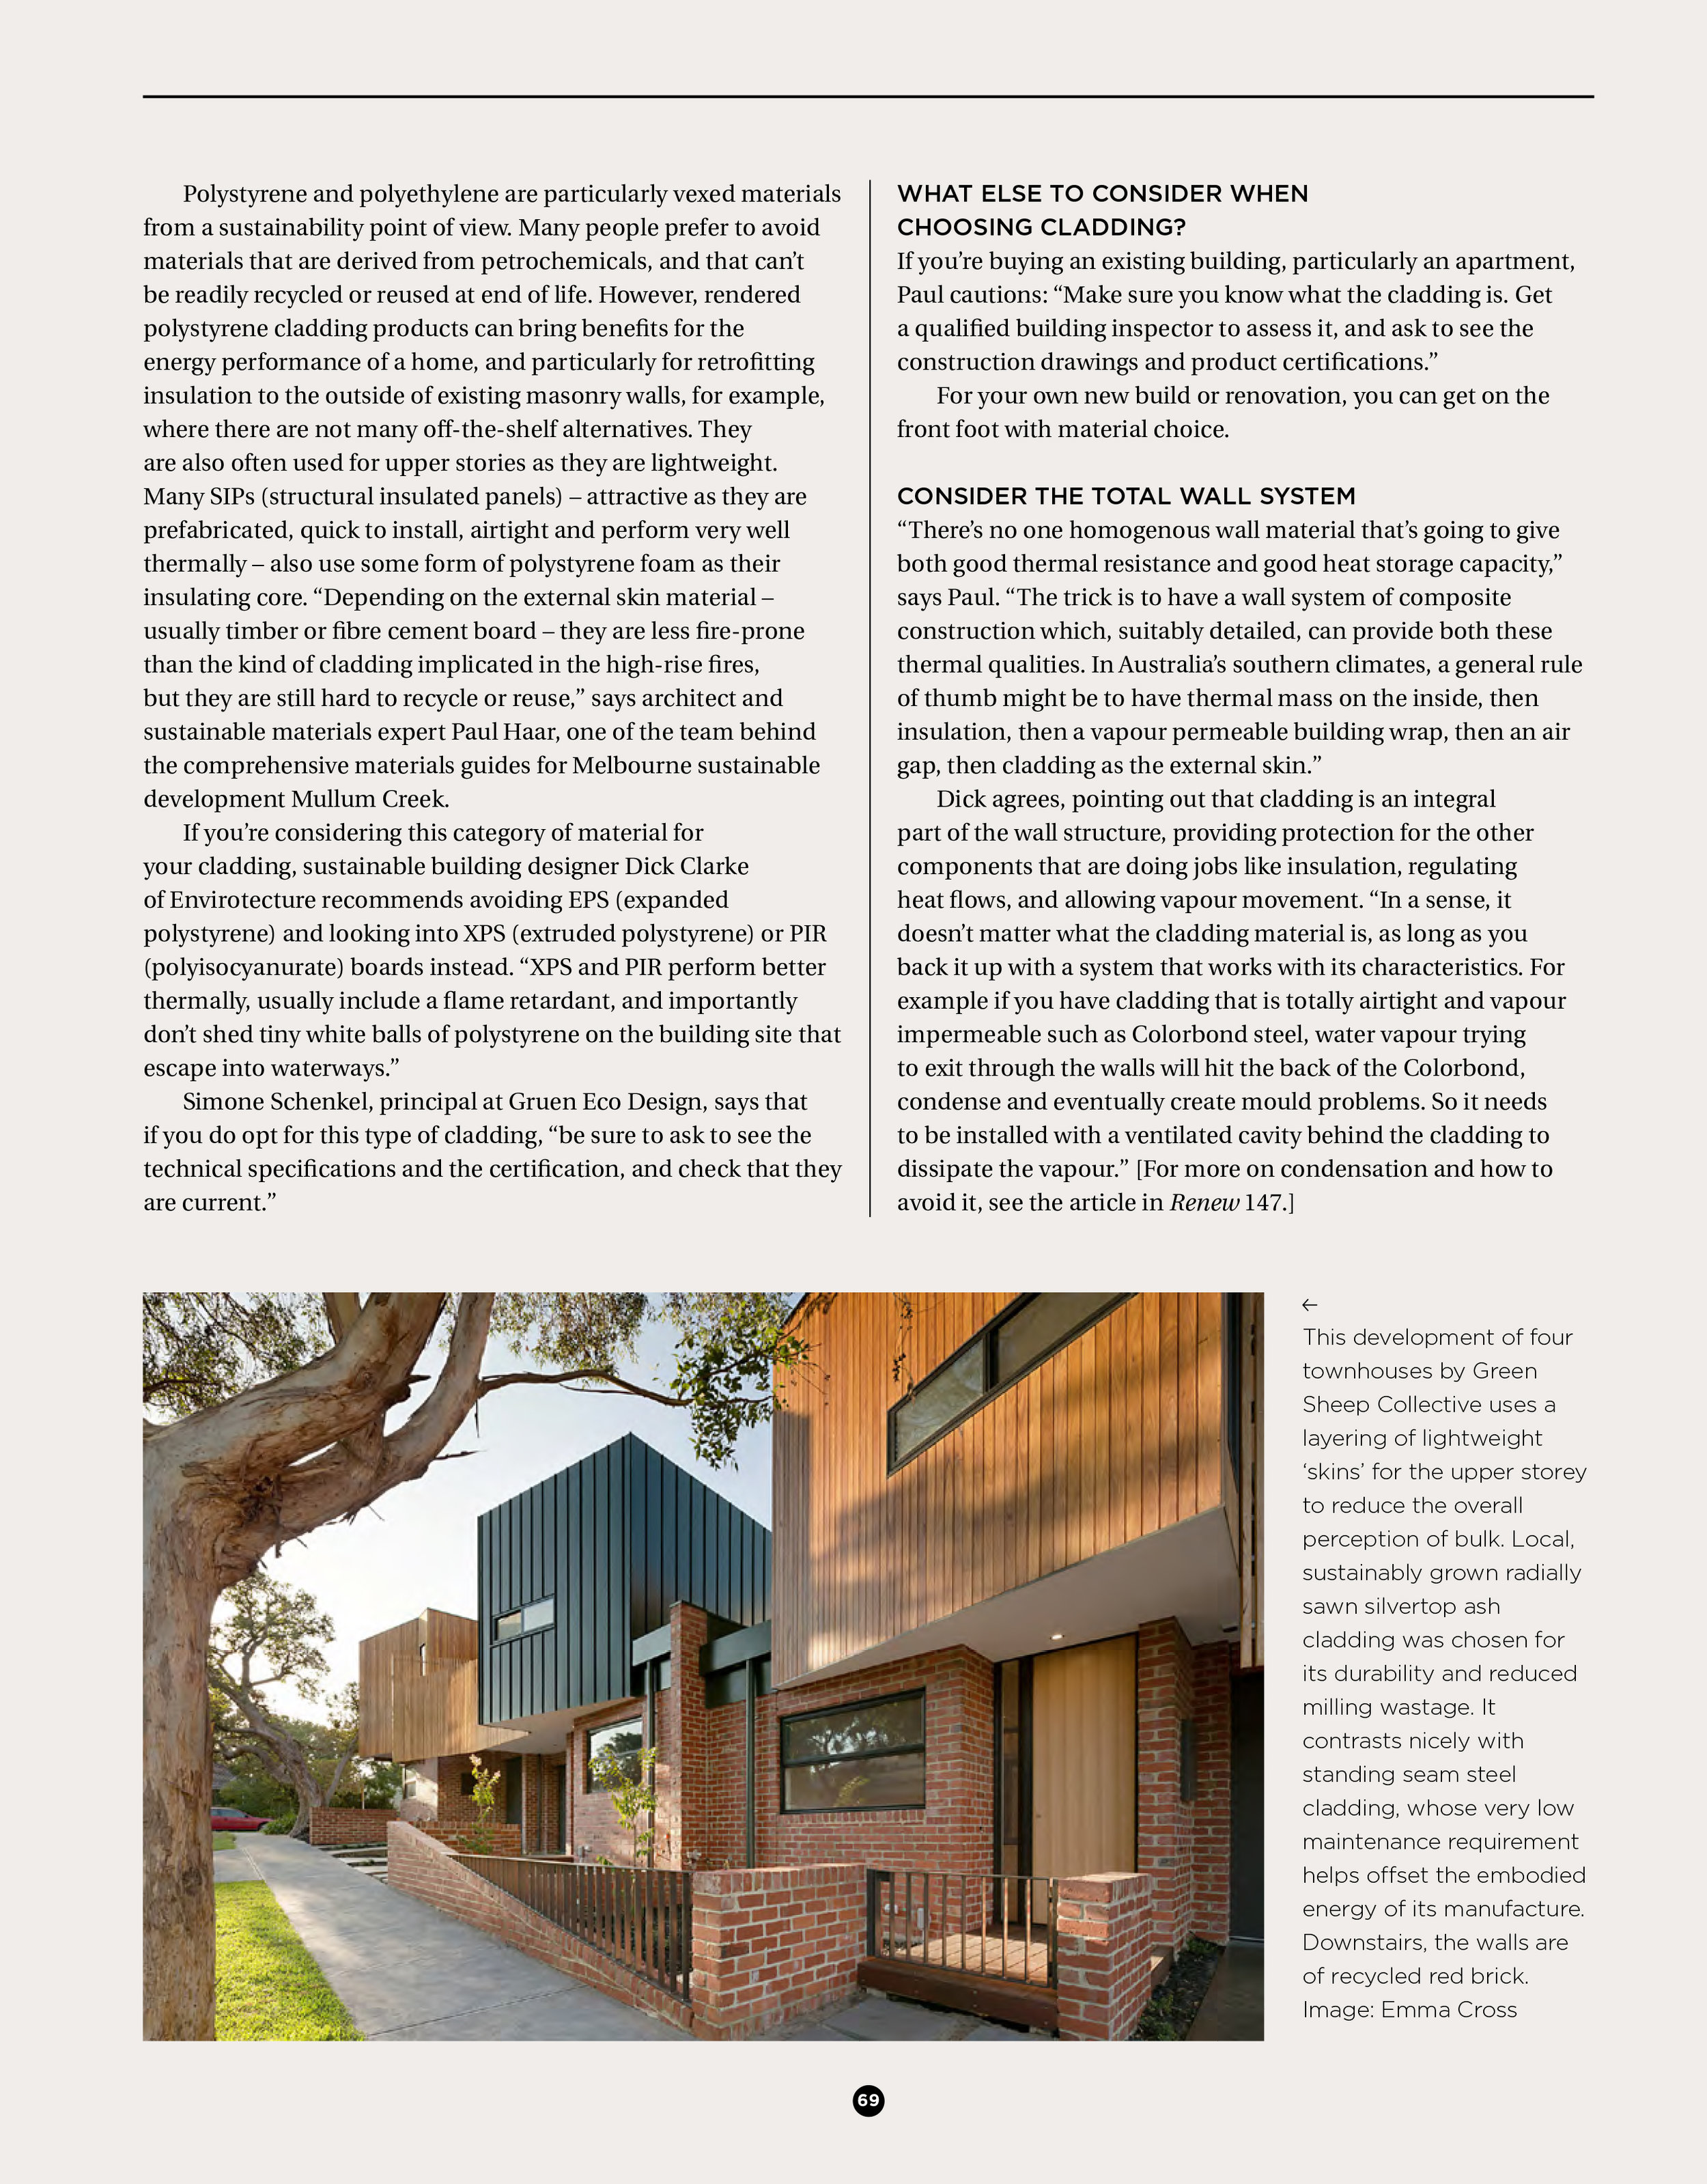 2019_Sanctuary Magazine_Cladding-5.jpg